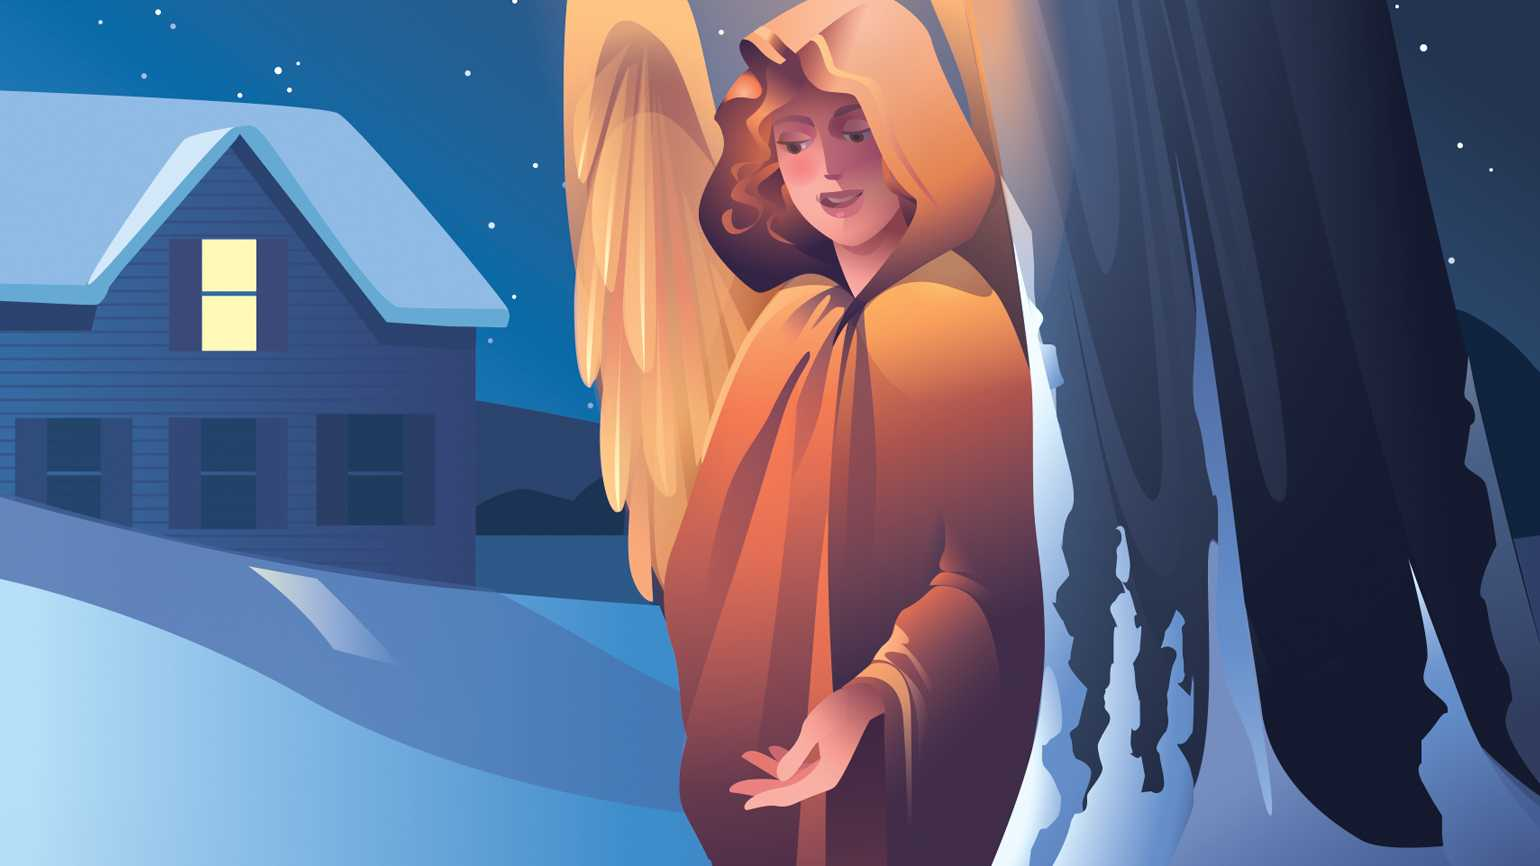 A snow angel appears next to a girl on a sled; Illustration by Kim Johnson